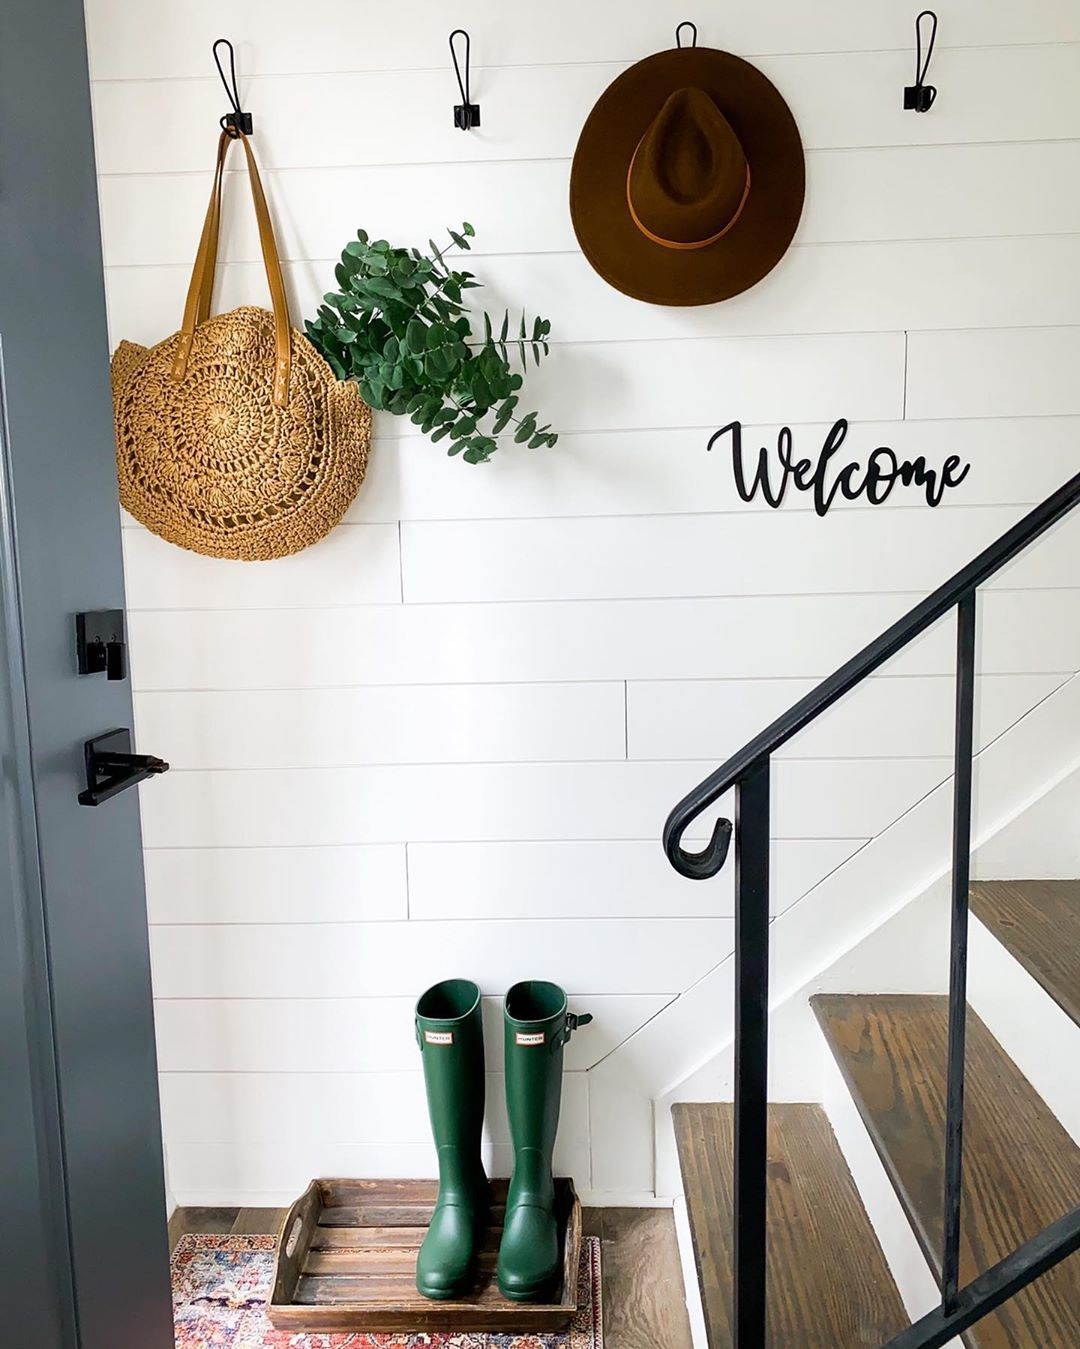 #smallentryway #shiplapwall #splitfloyerentry #splifoyerstairwall #shiplapsmallspaces #splitlevelwall  #splitlevelentry #prettystairwall #farmhousestairs #walcomesign #shiplapwork #shiplapstais